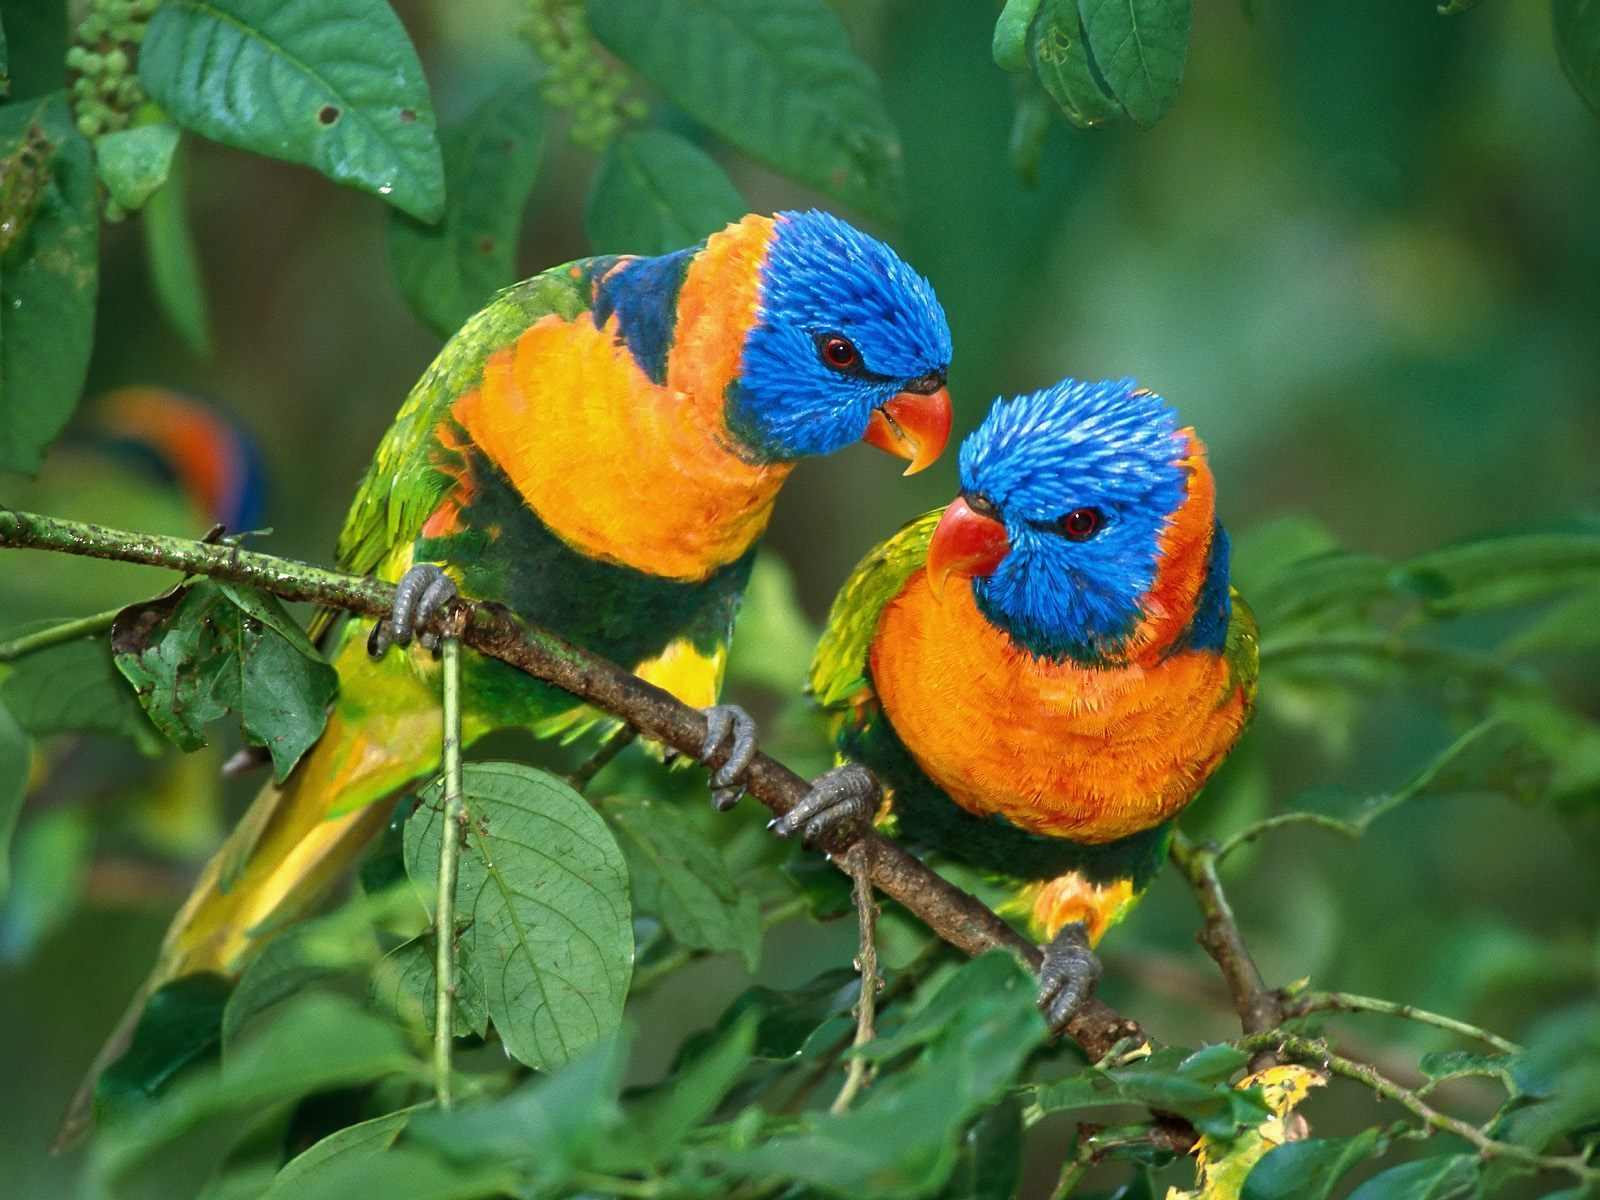 Parrots images 2 parrots hd wallpaper and background Pictures of birds